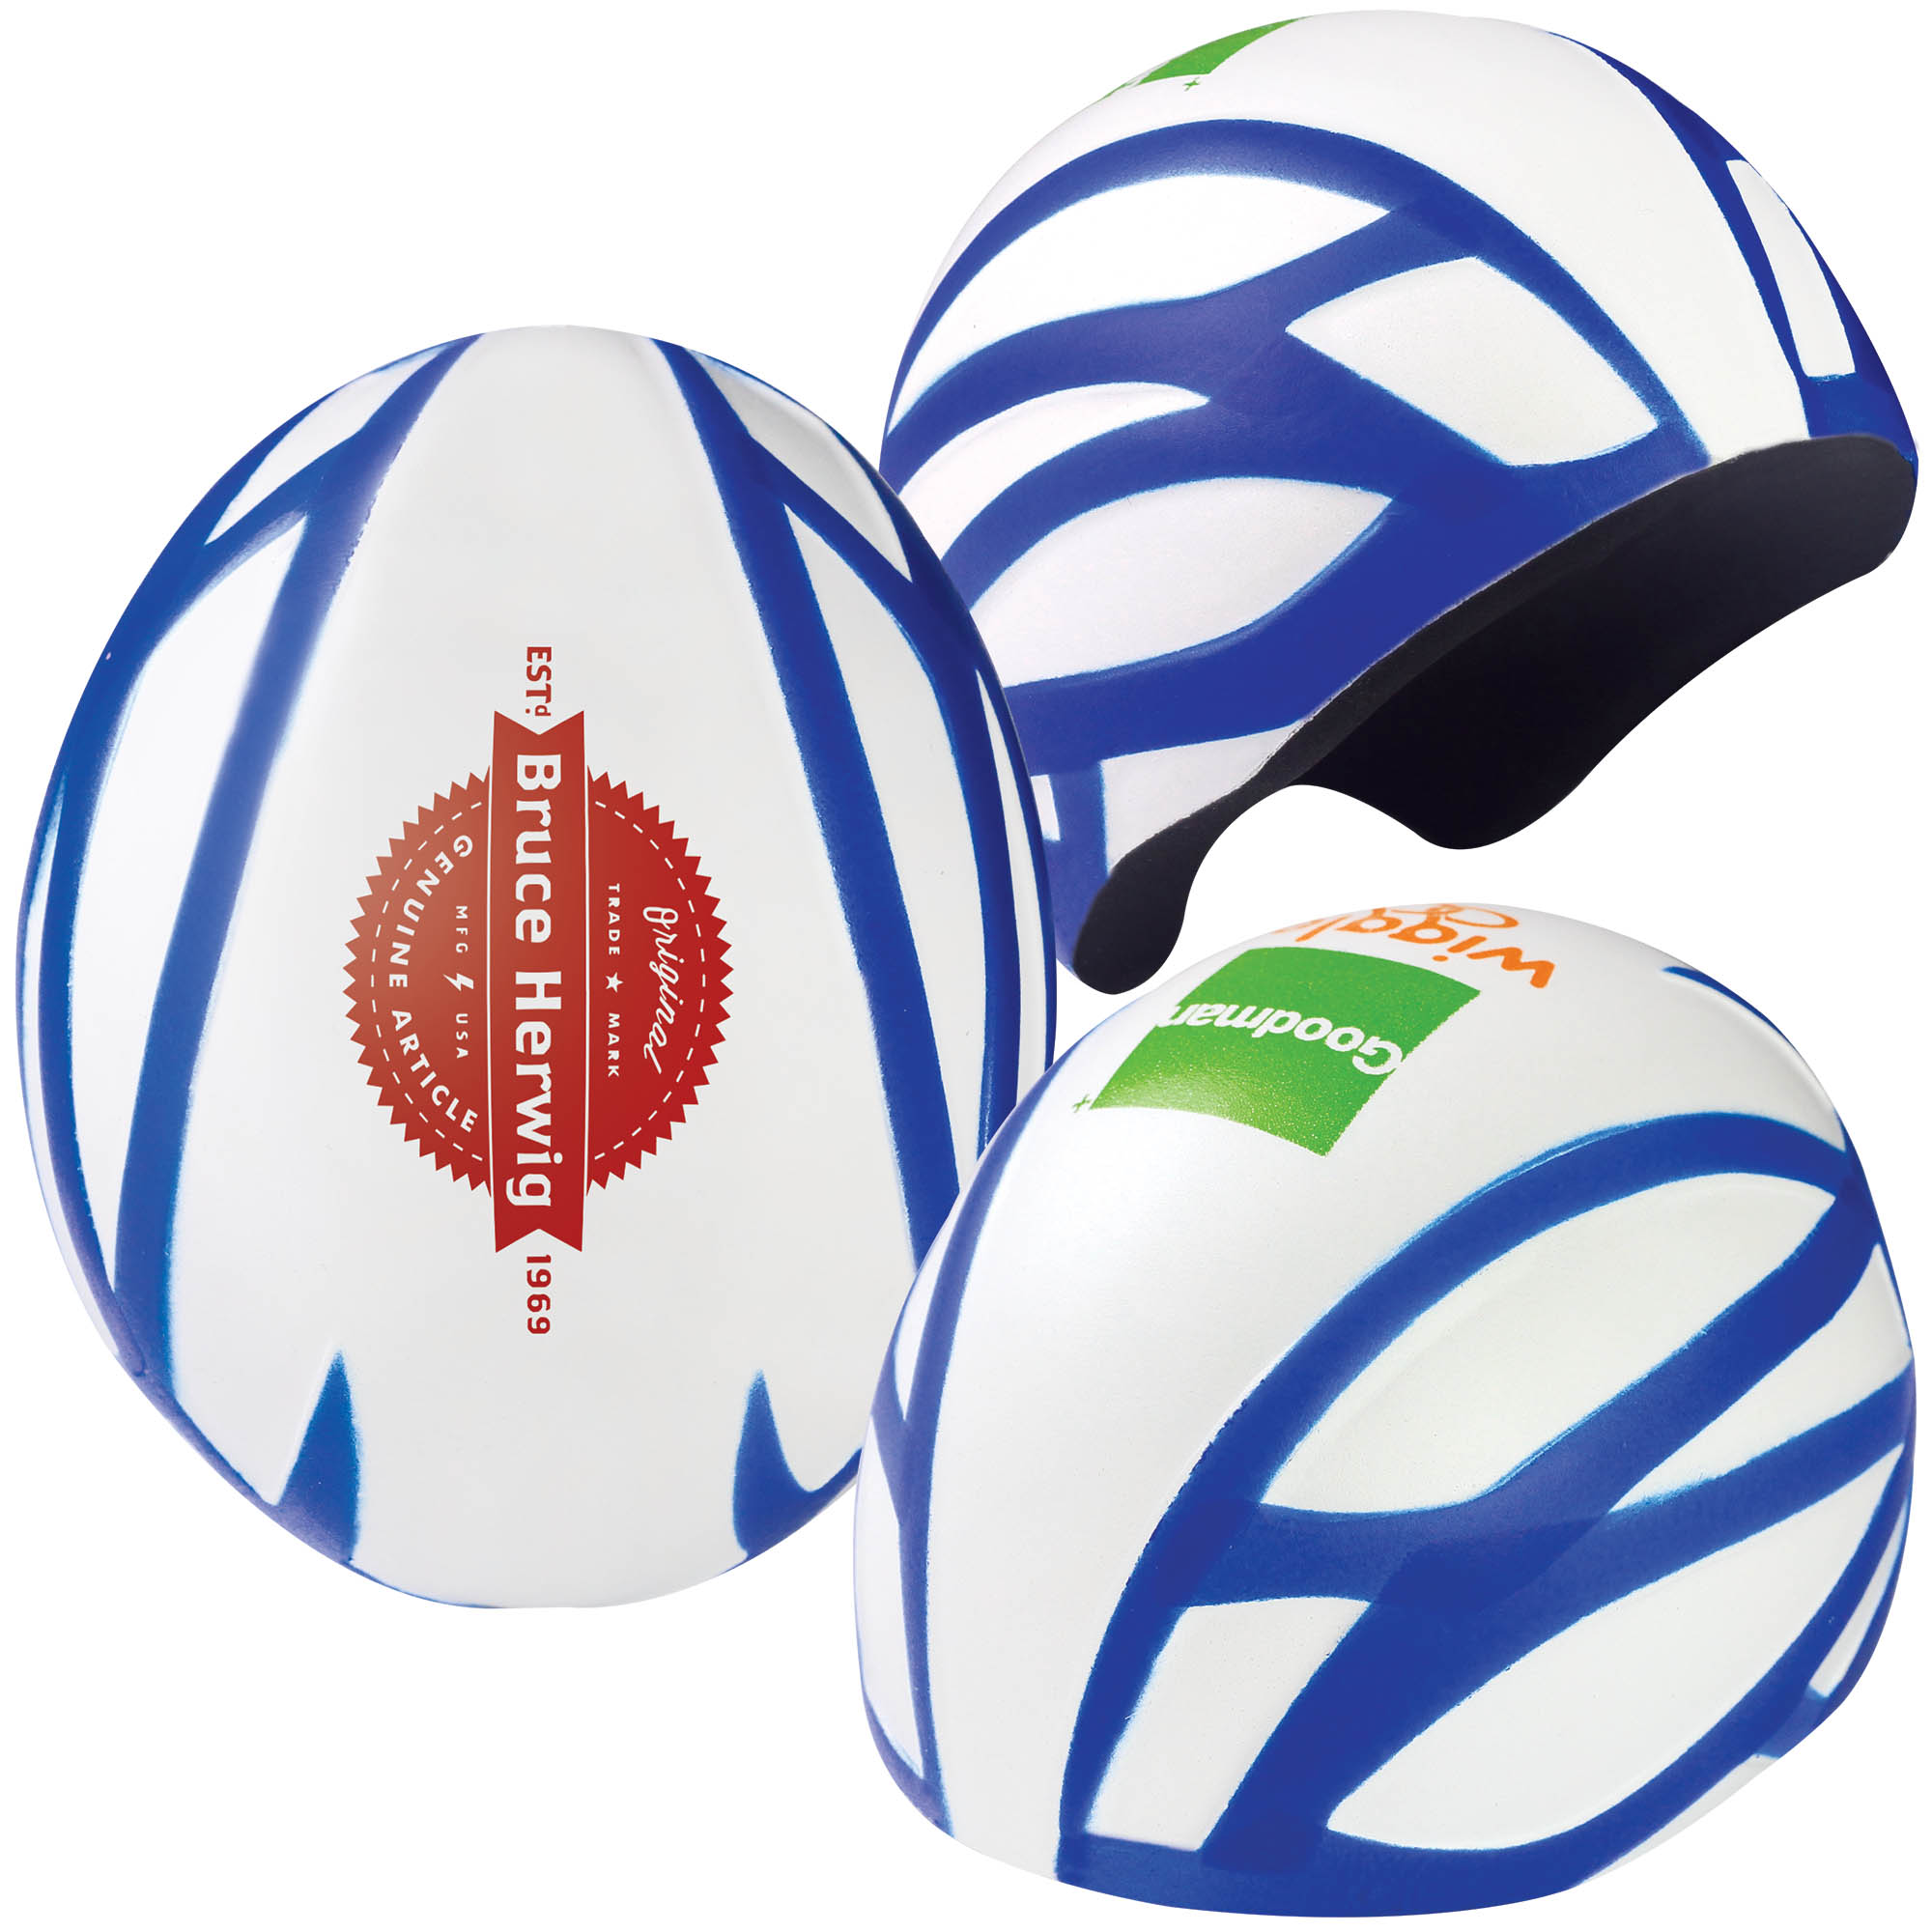 Stress Cycling Bike Helmet